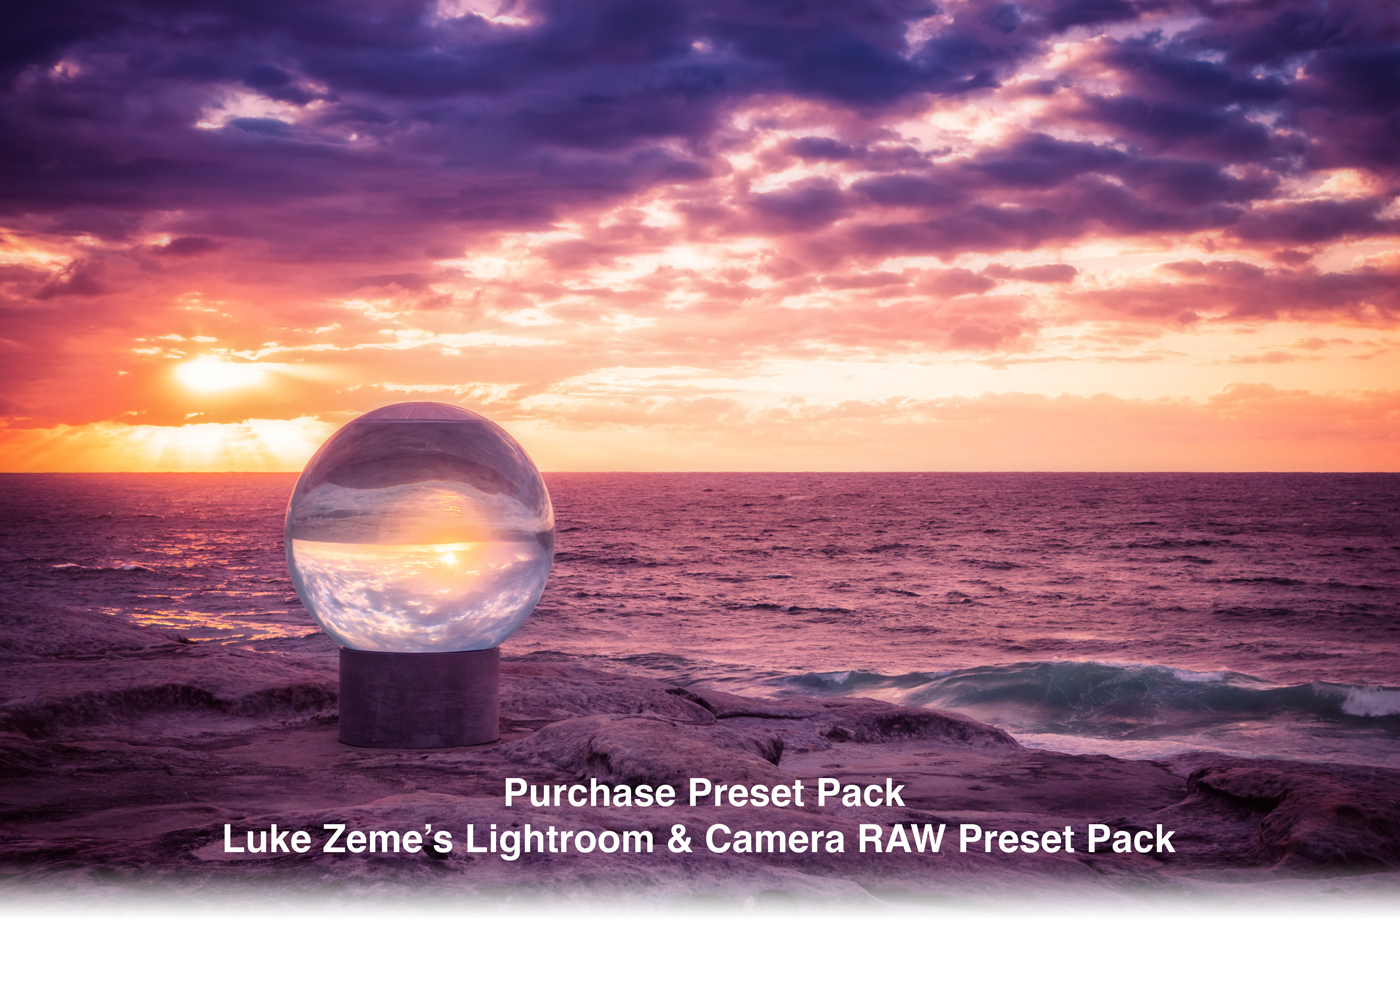 Luke Zeme Photography Lightroom-preset-pack 50 HDR and Landscape Lightroom Presets- My 50 Best Presets!